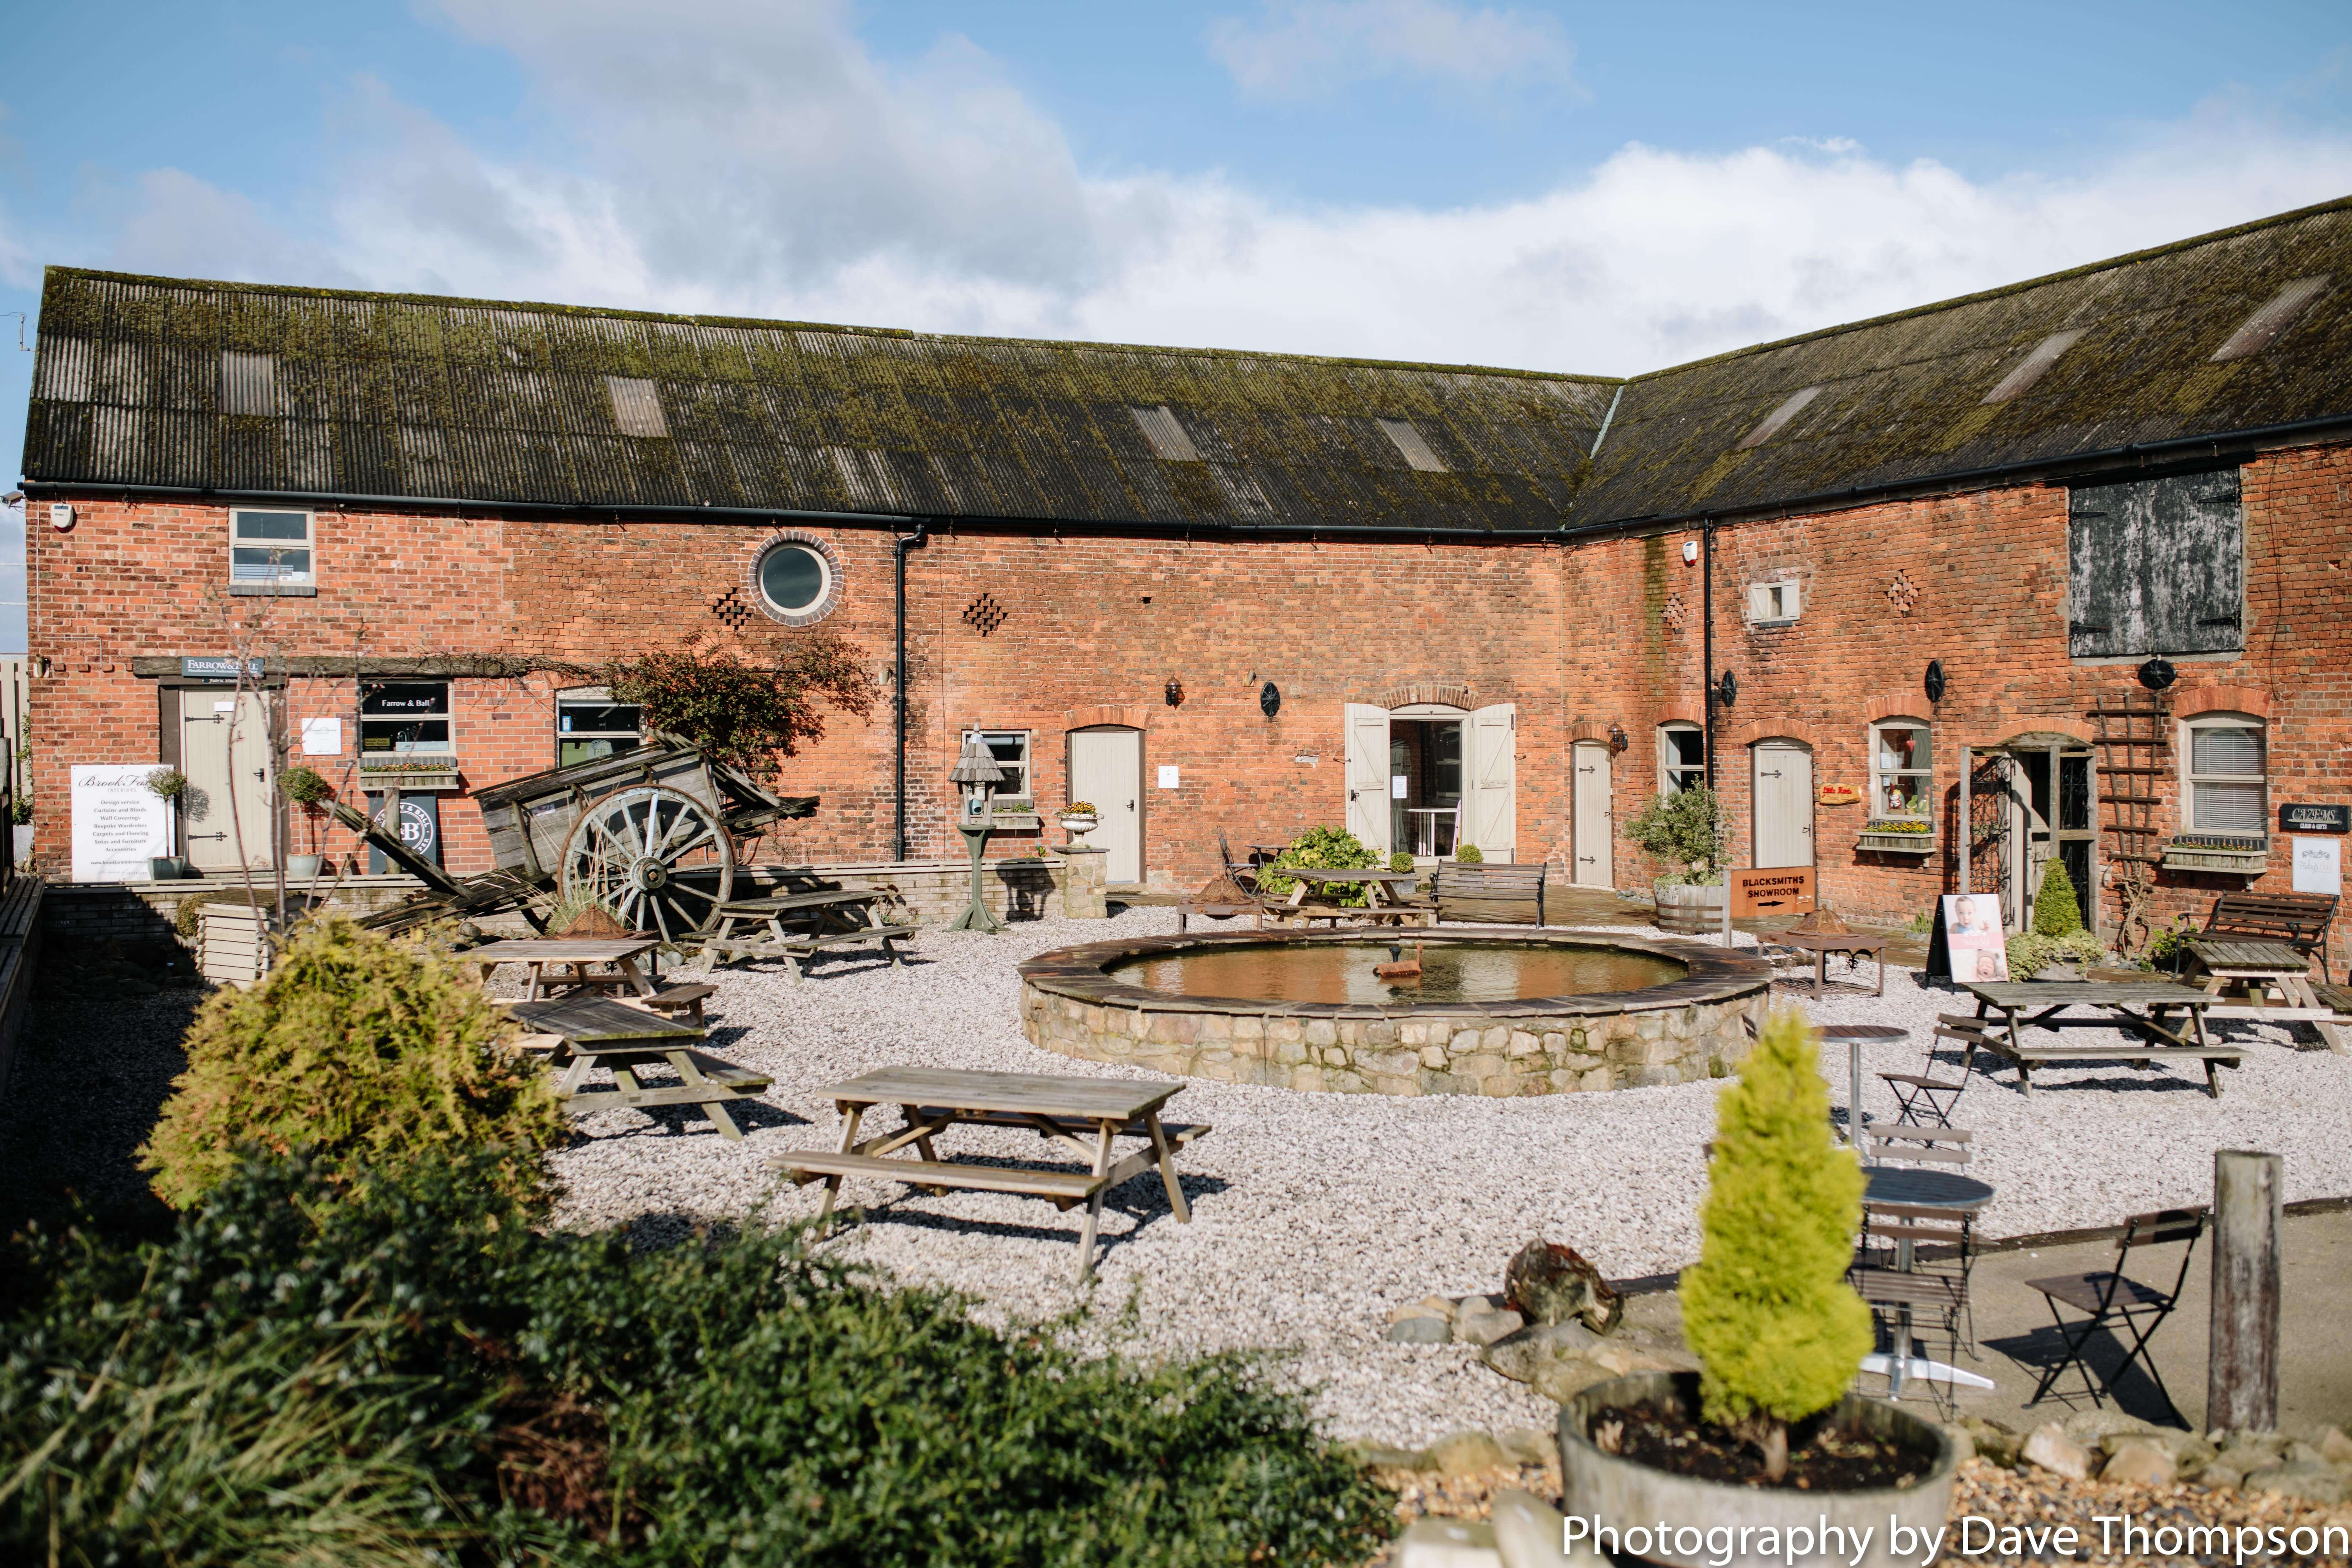 The courtyard at Alcumlow Wedding barn